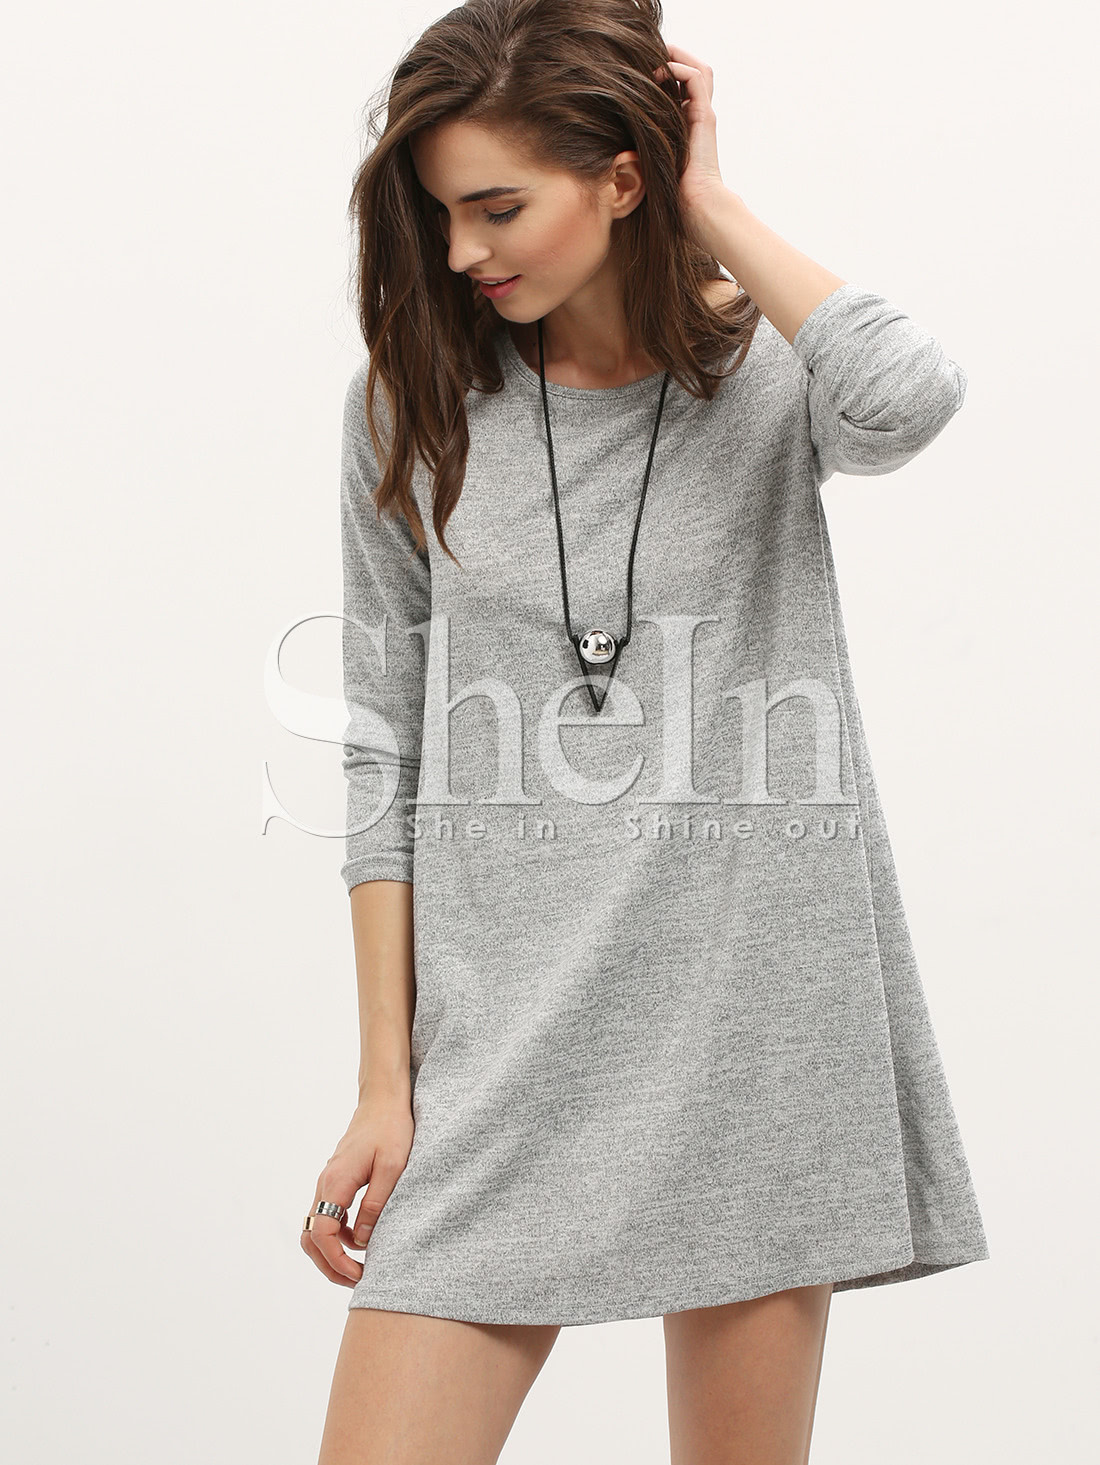 Grey Long Sleeve Casual Dress dress151016709